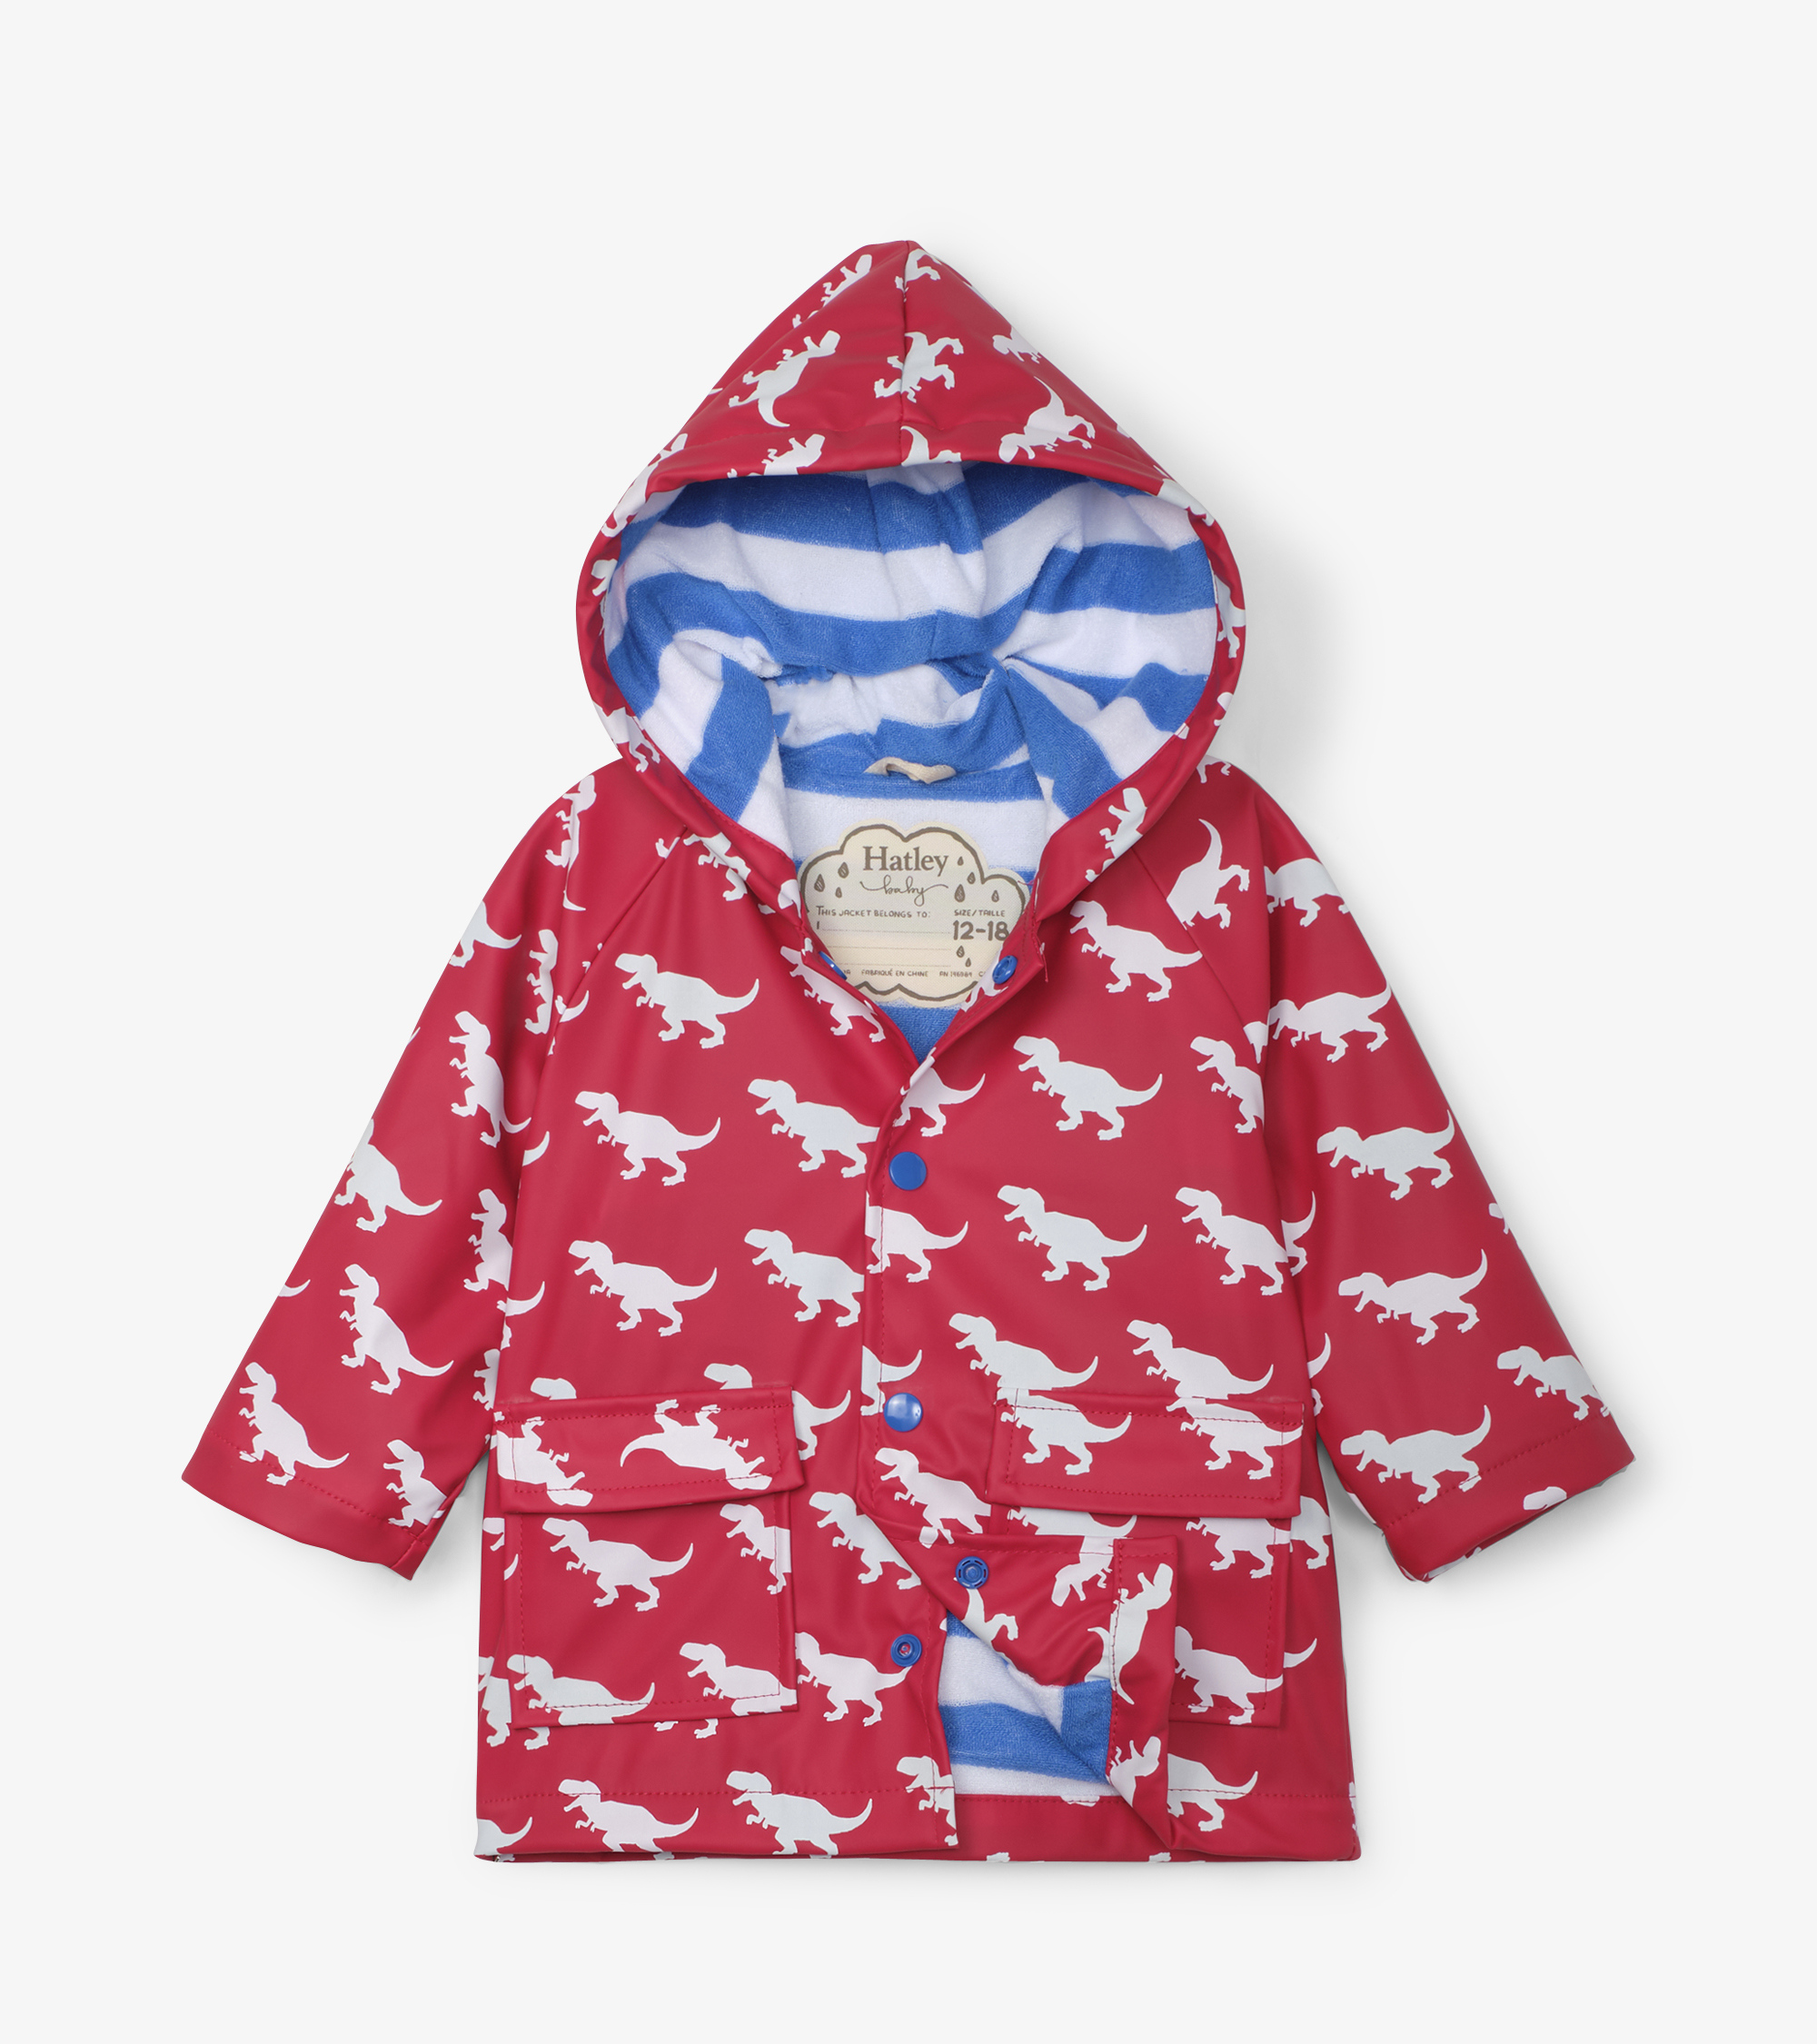 Hatley T-Rex Silhouettes Colour Changing Baby Raincoat